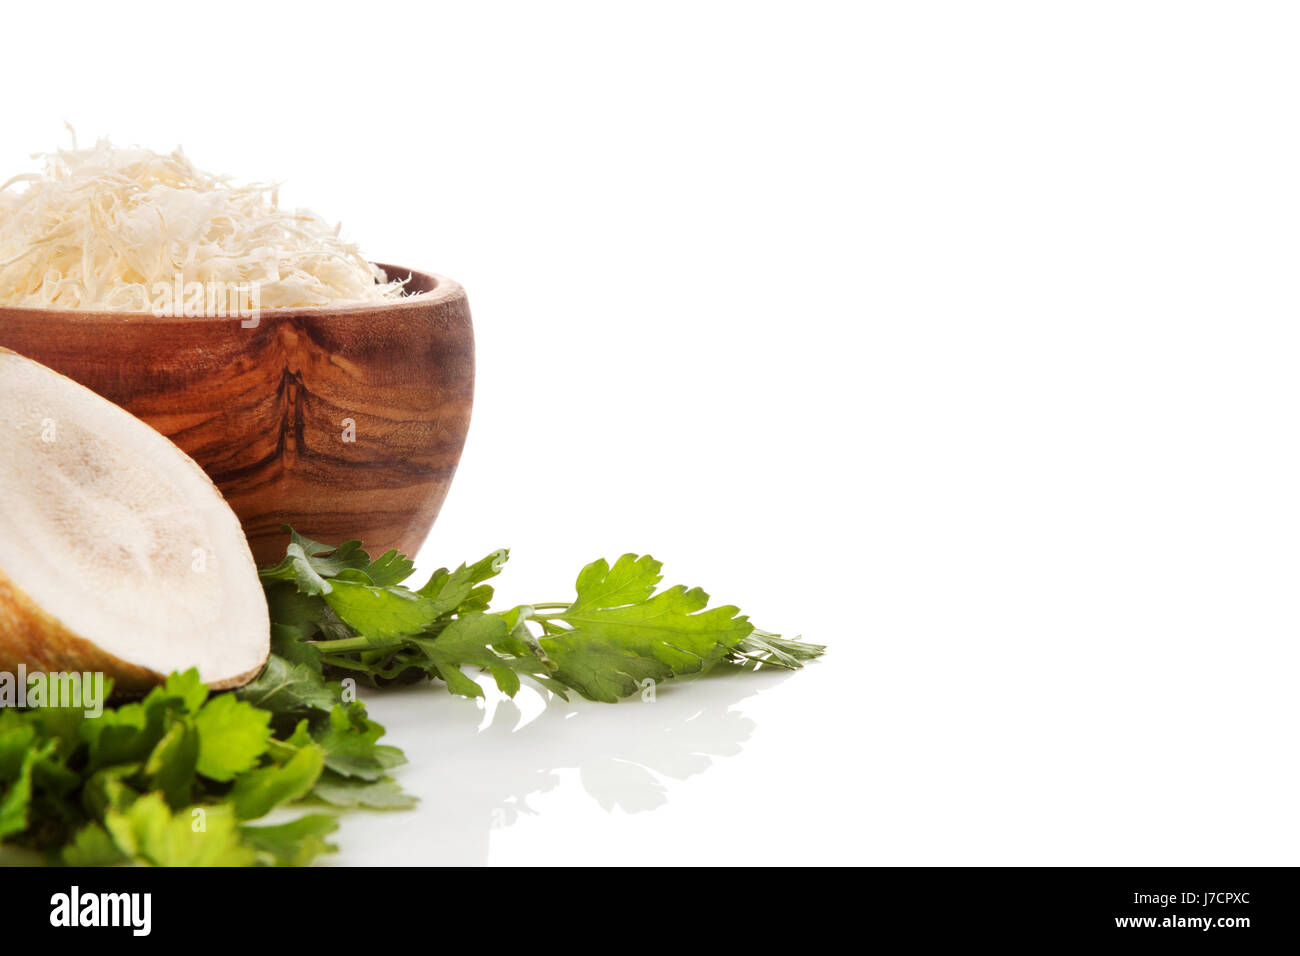 Grated horseradish in wooden bowl isolated on white background. - Stock Image